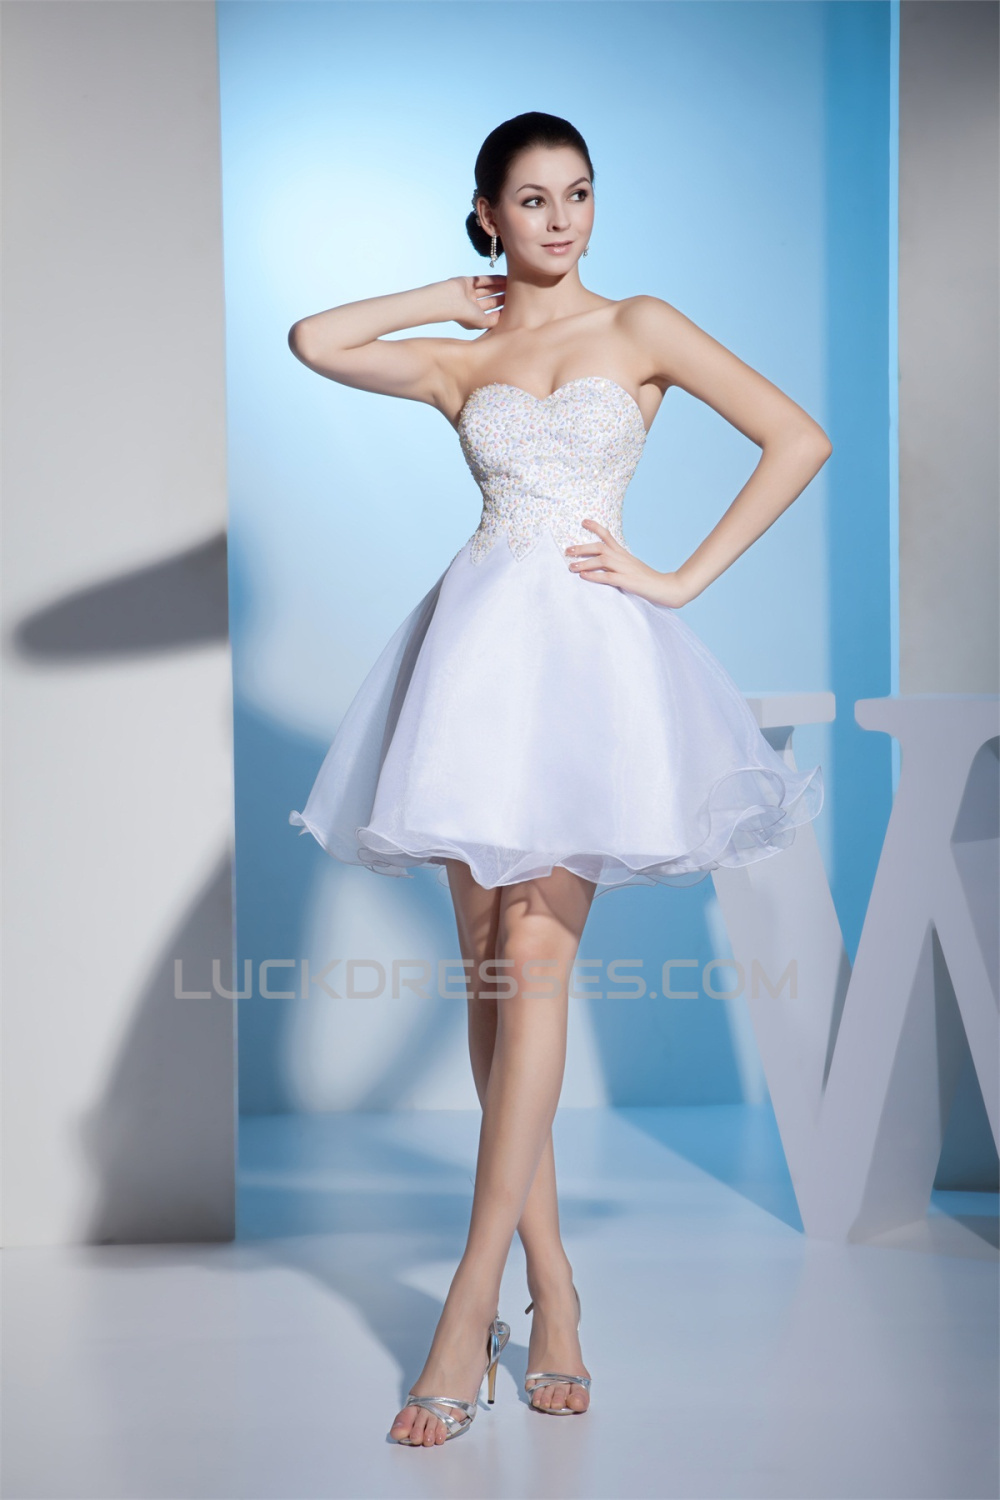 Wonderful Satin Organza A-Line Sleeveless Sweetheart Short Wedding ...